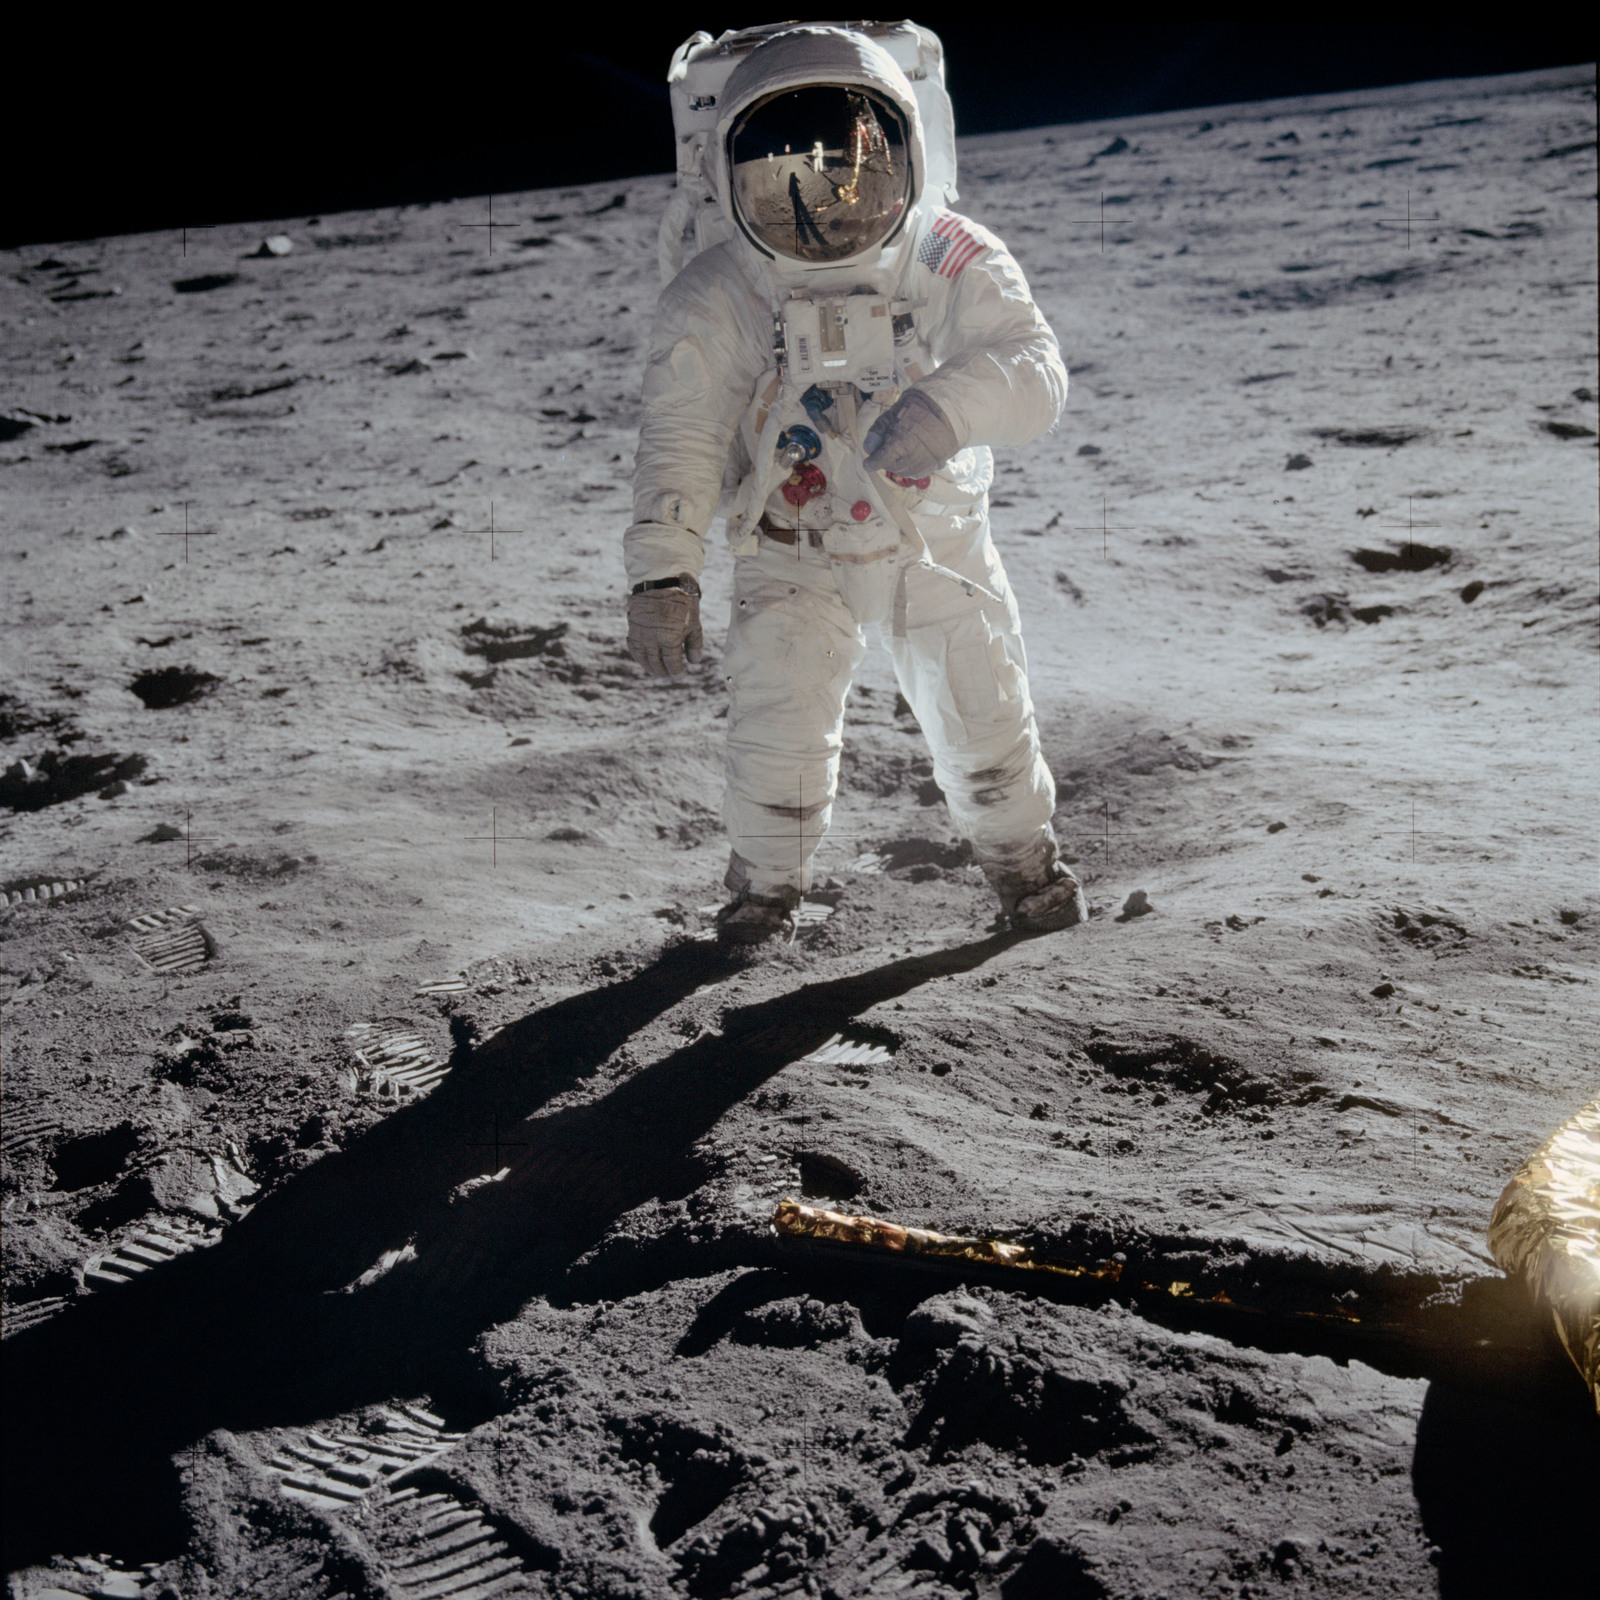 AS11-40-5903_alt - Apollo 11 - Apollo 11 Mission image -  Astronaut Edwin Aldrin walks near the Lunar Module